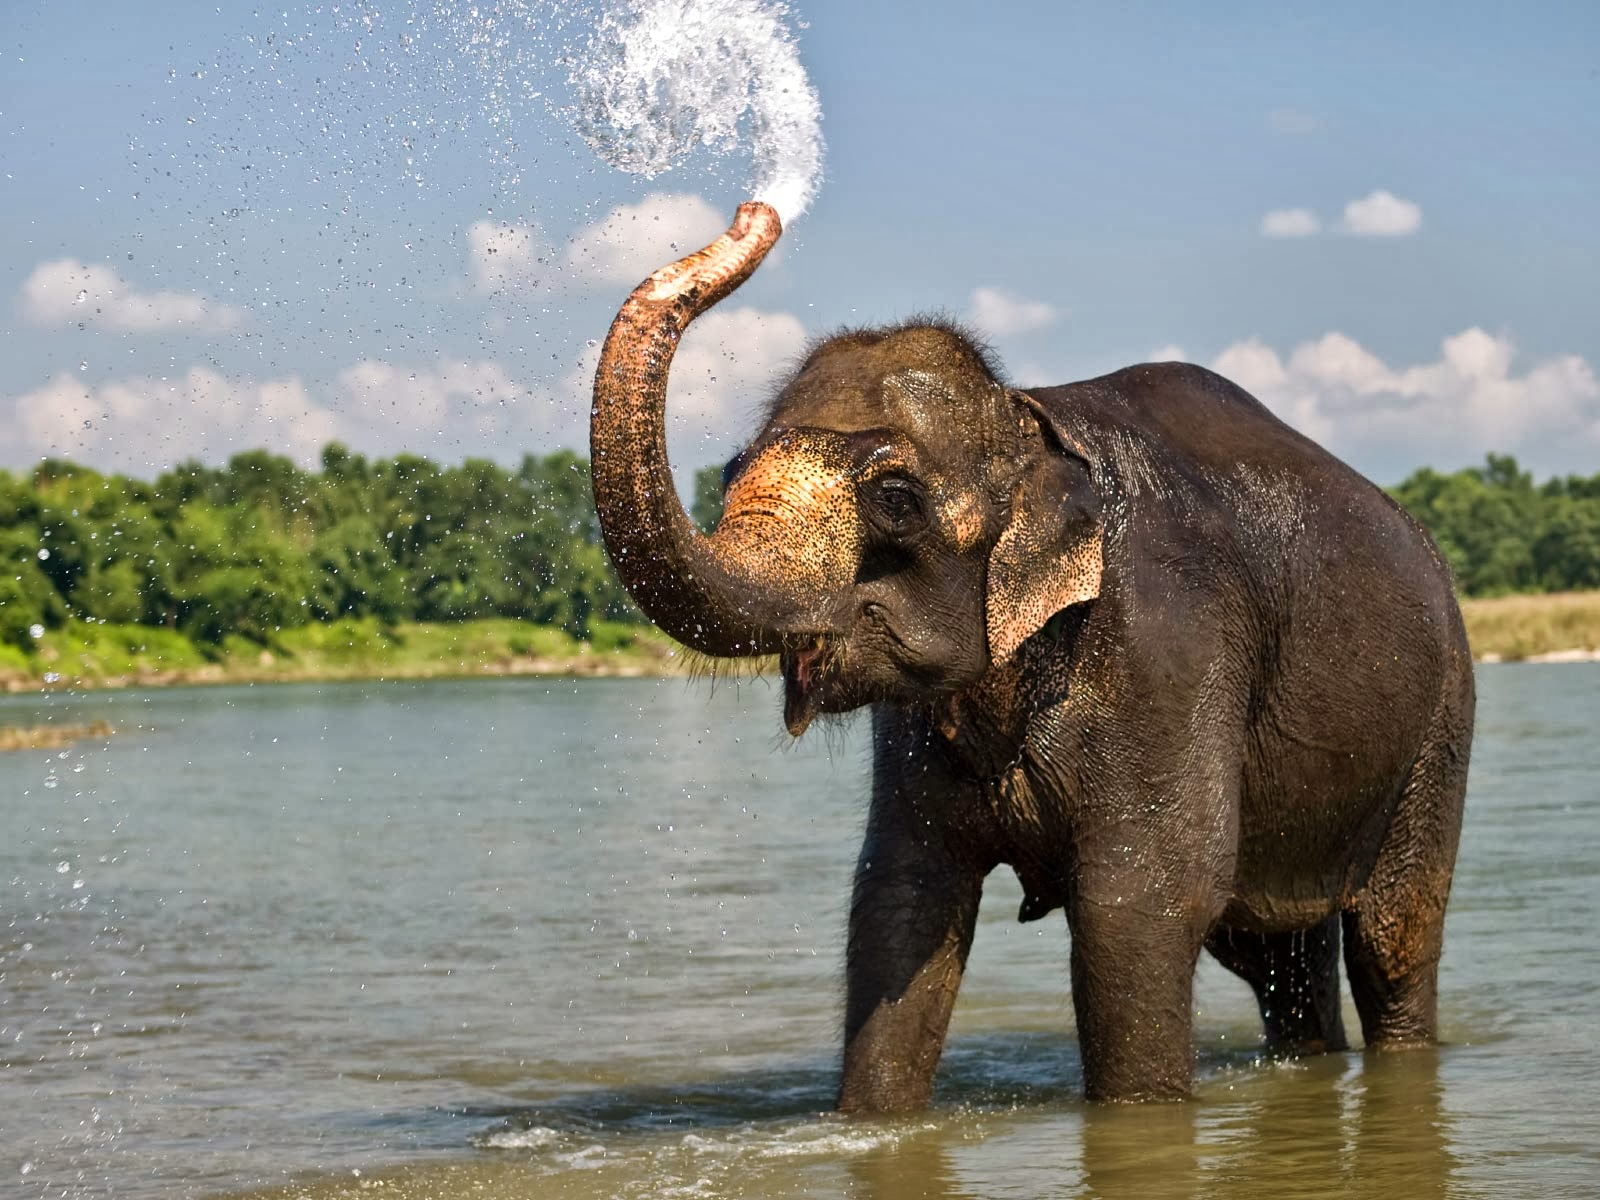 Elephant WallpapersElephant PicturesElephant FotosElephant PhotoElephant Download Images